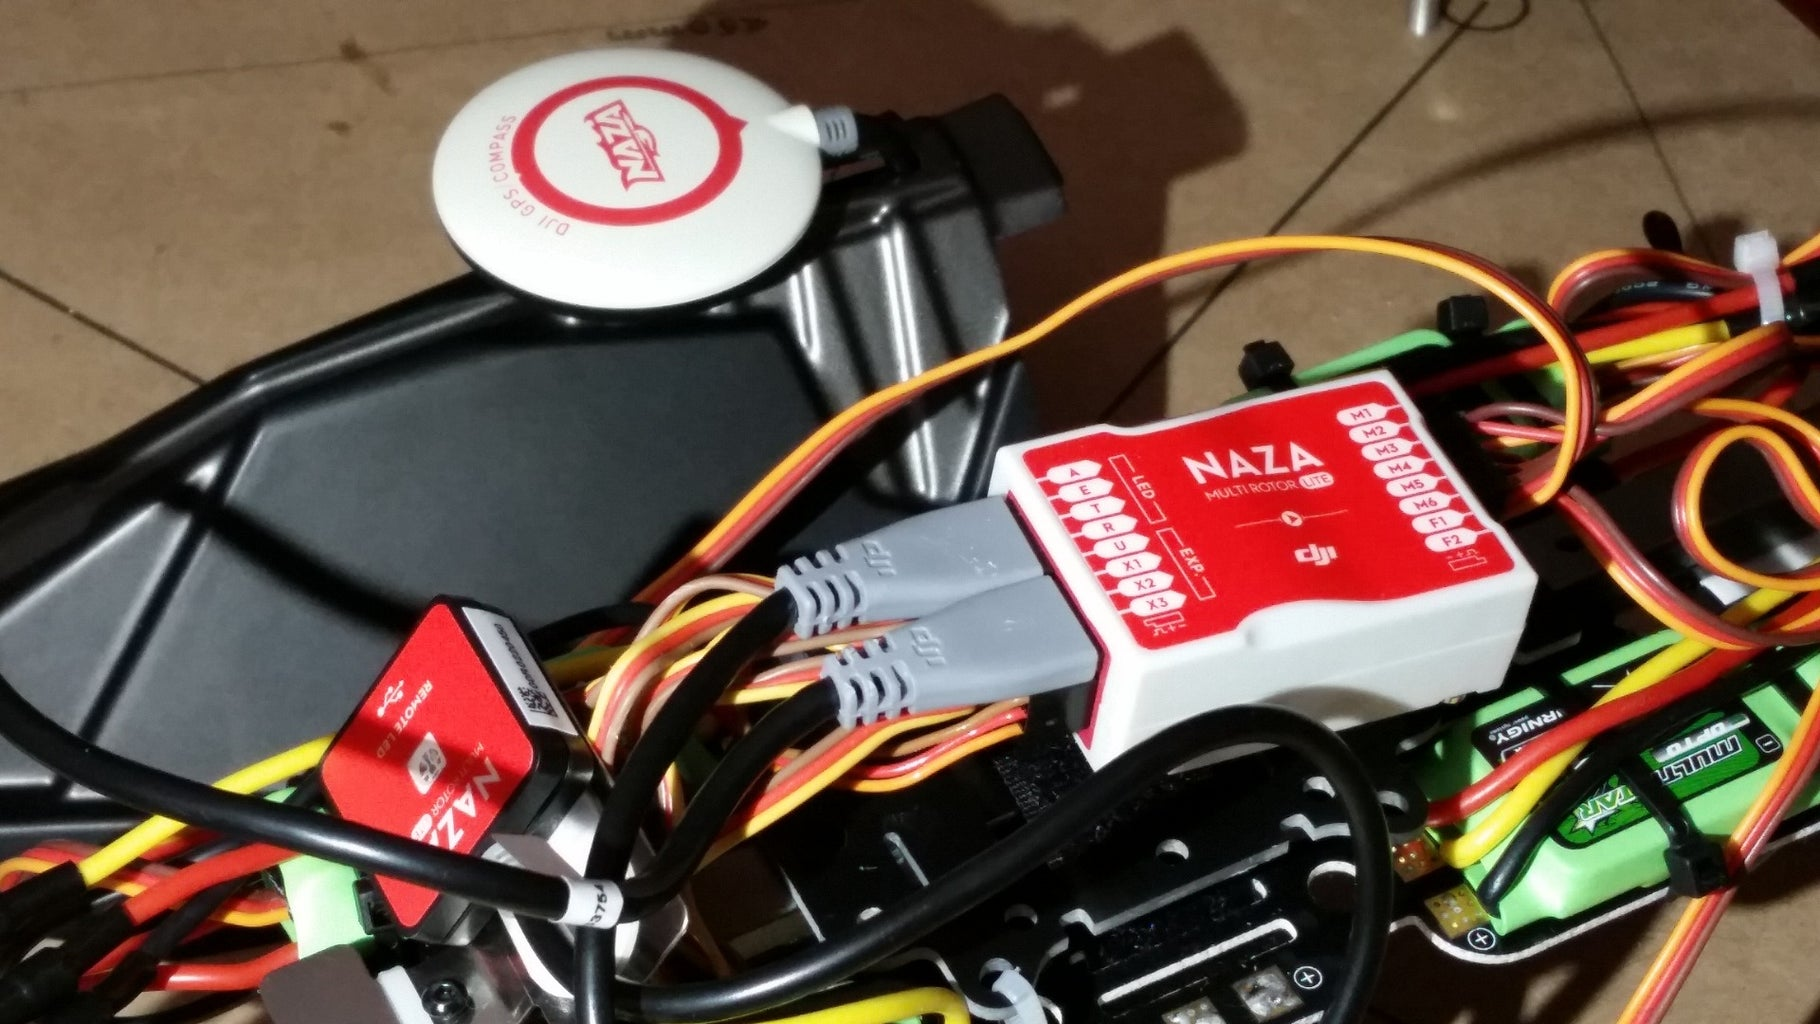 Connect the GPS/Compass Module to the Flight Controller